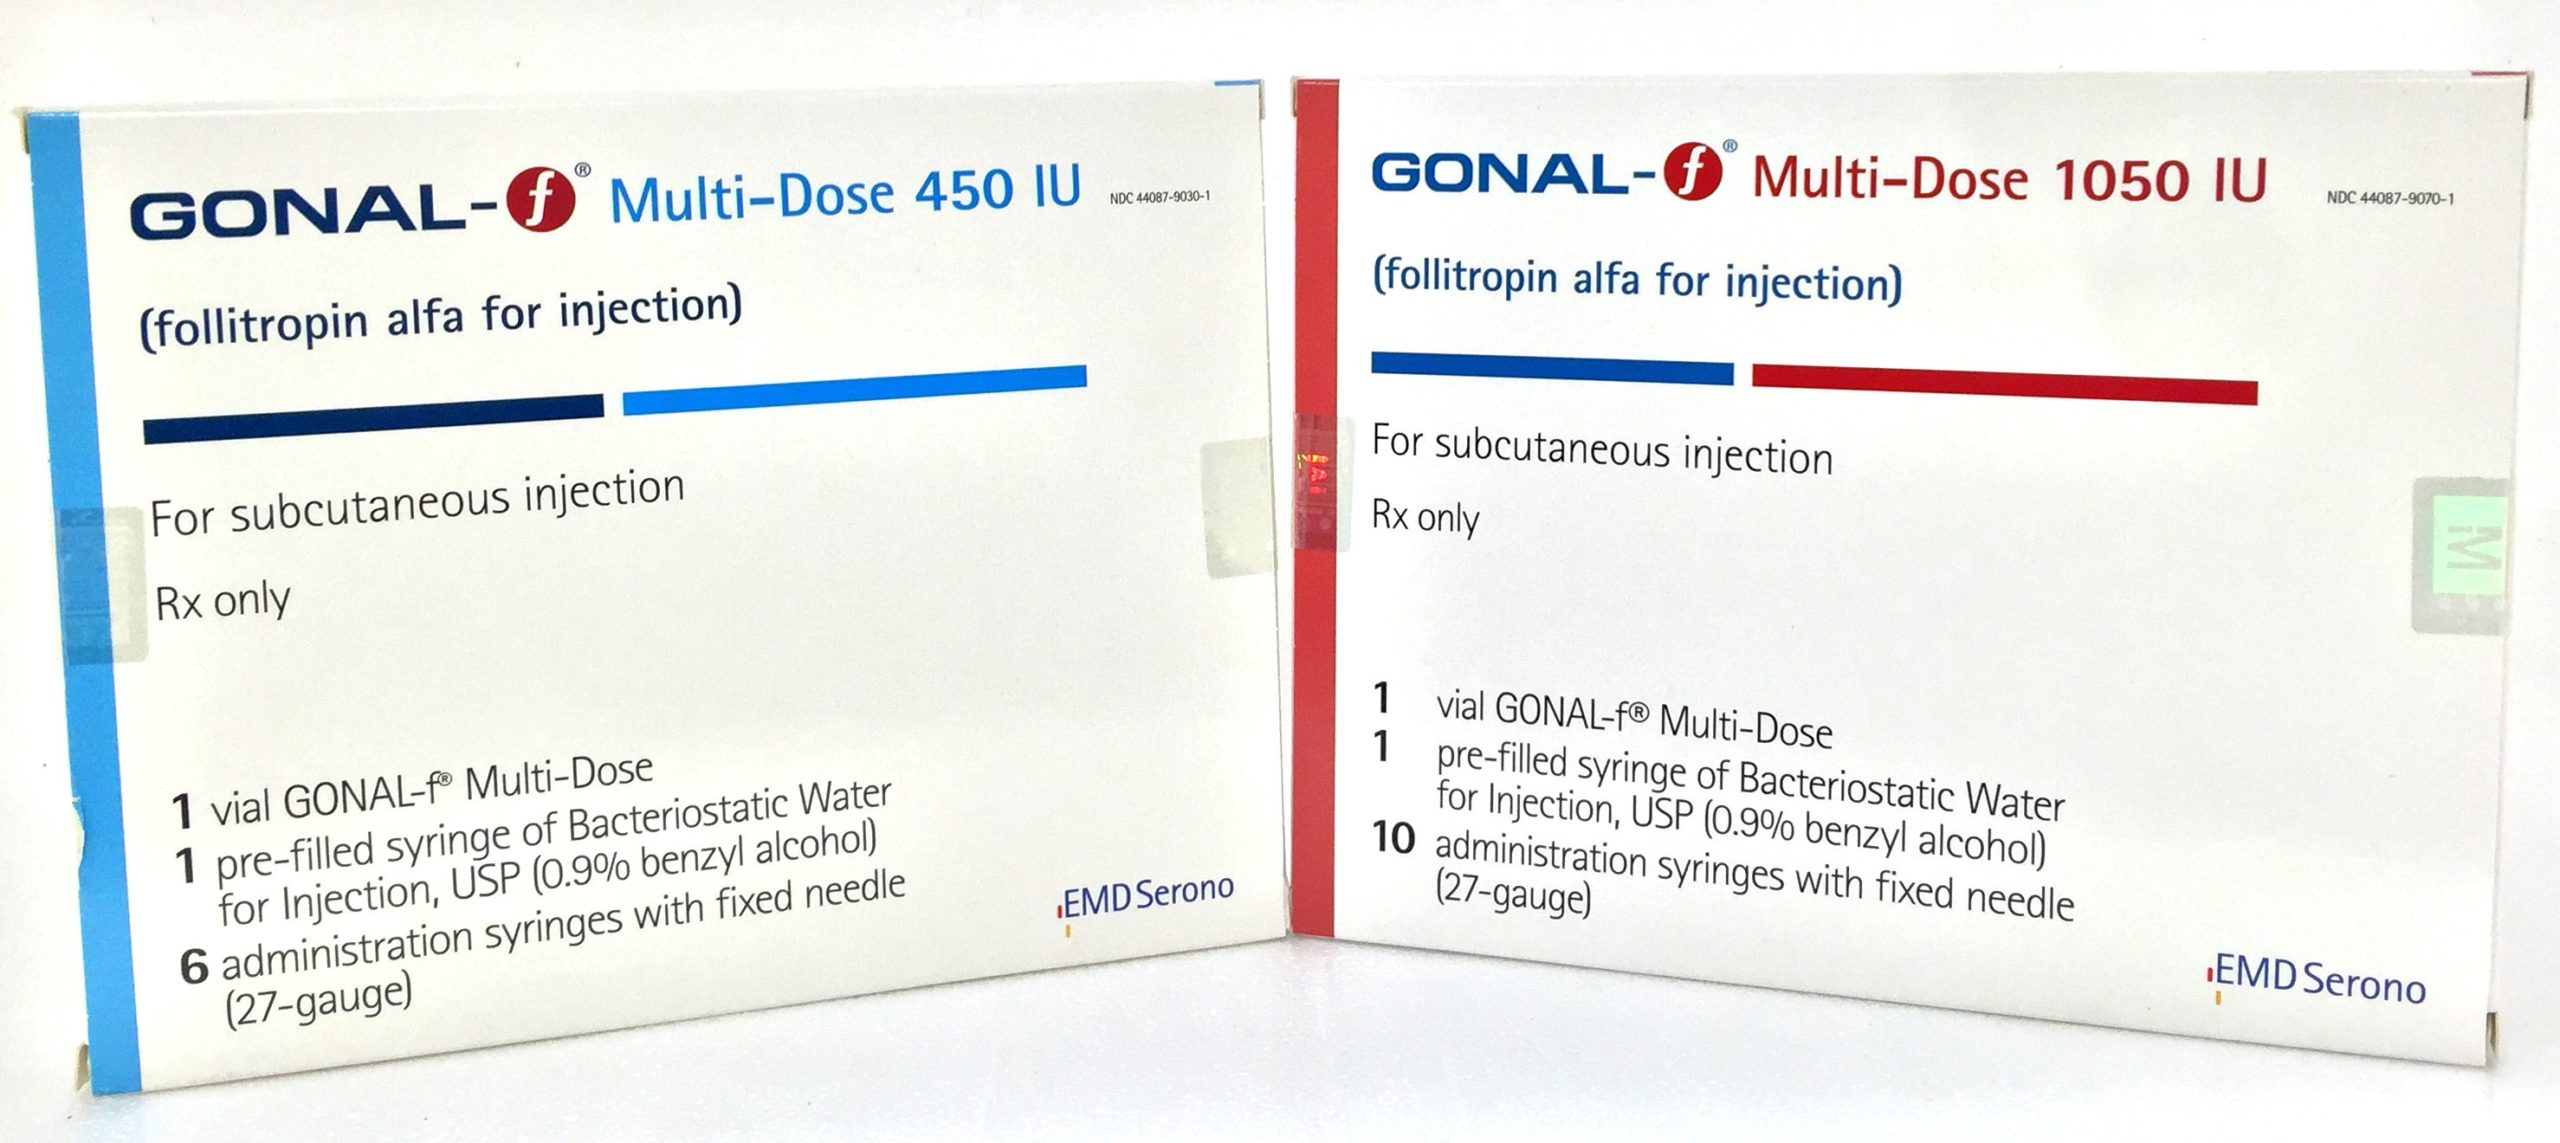 Medication Instructions – Mandell's Clinical Pharmacy